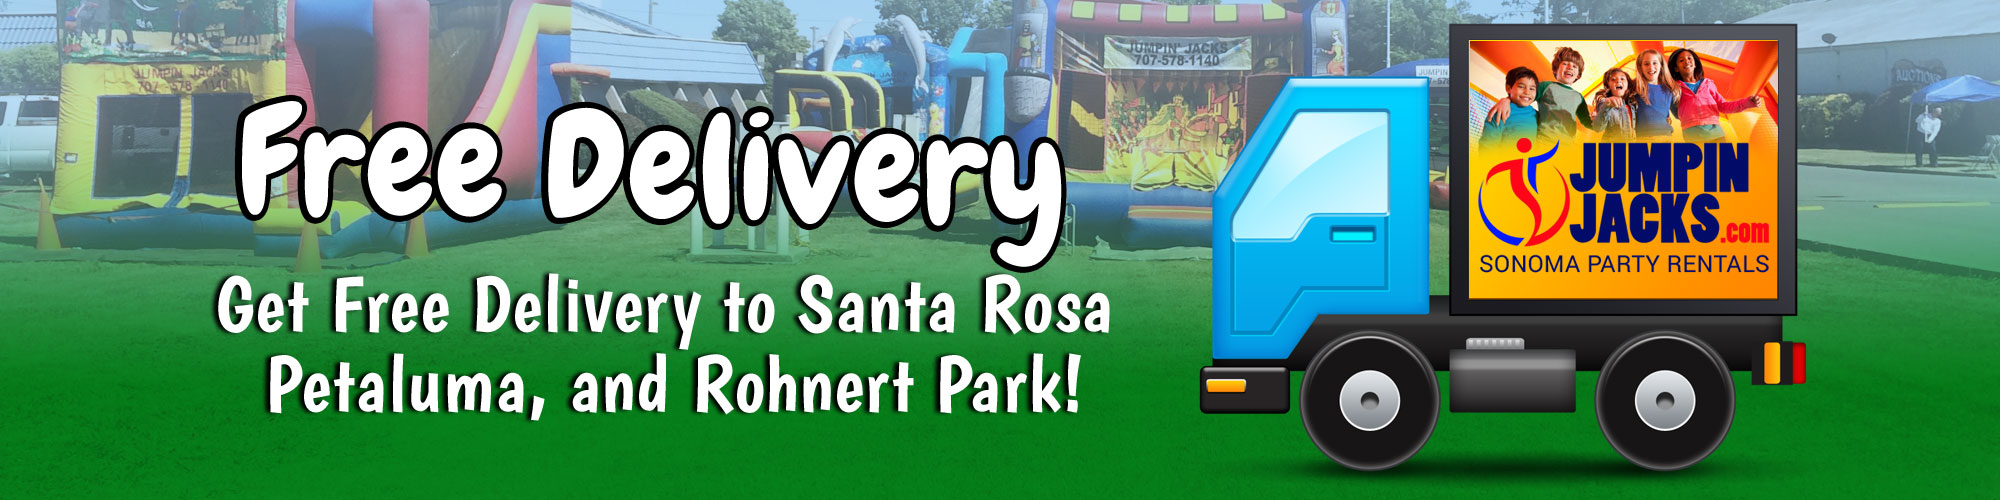 Bounce House & Party Rentals | JumpinJacks com Santa Rosa CA